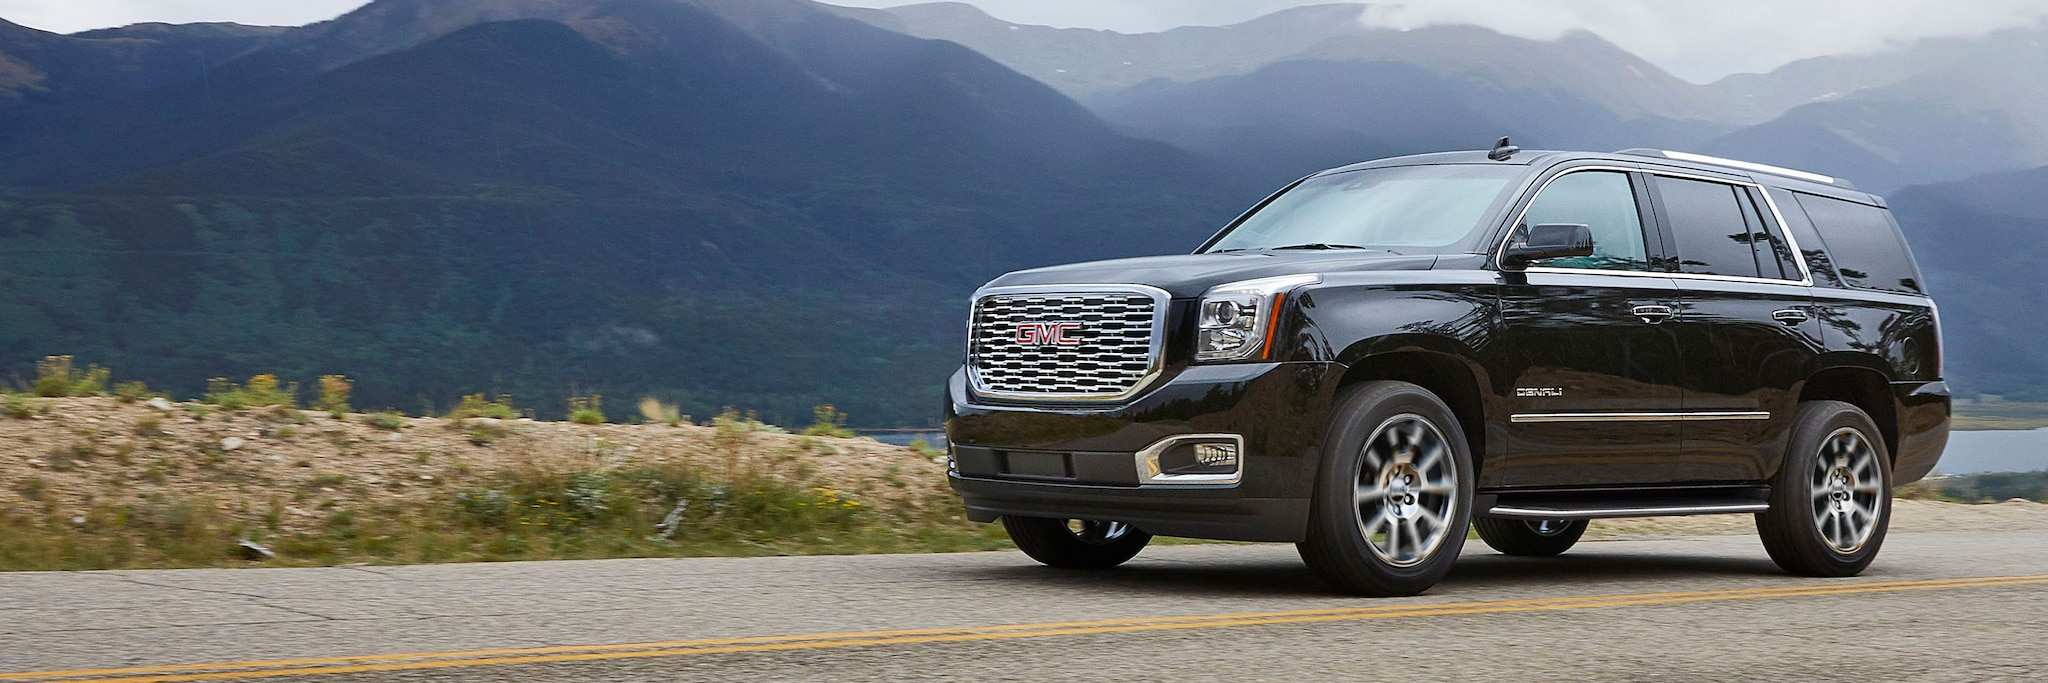 42 Great When Will 2020 Gmc Yukon Be Released Rumors for When Will 2020 Gmc Yukon Be Released